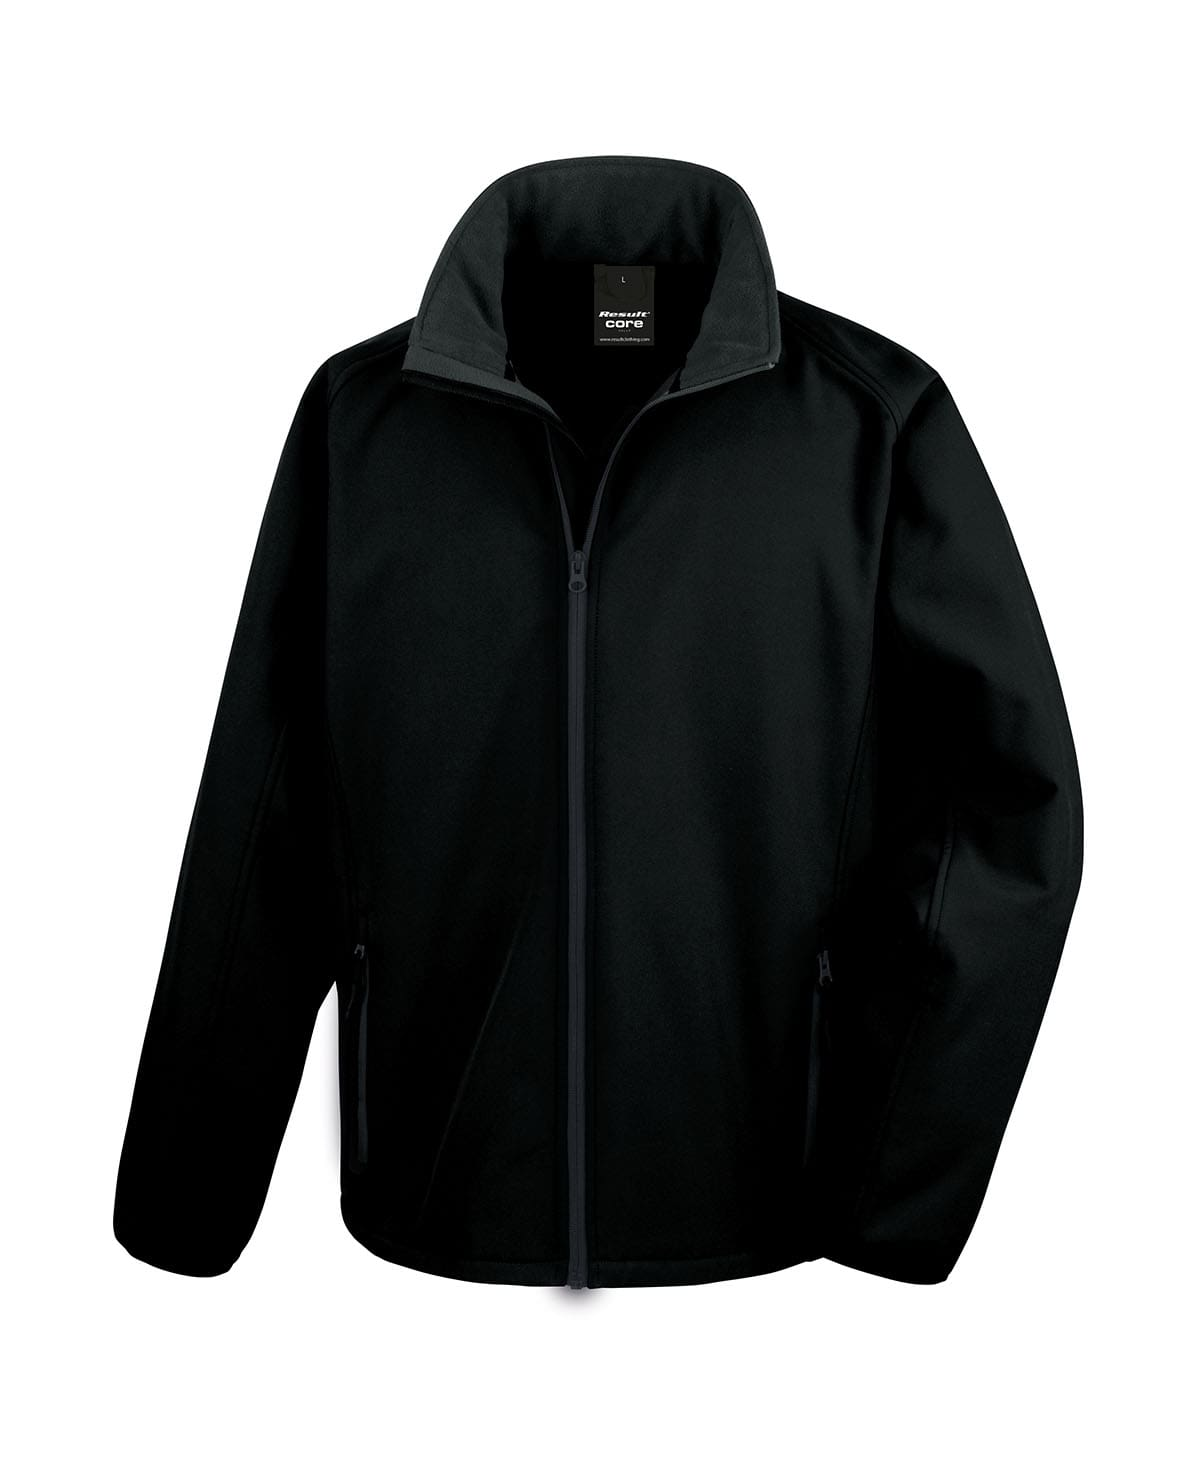 This is a photo of Printable Jacket pertaining to clipart